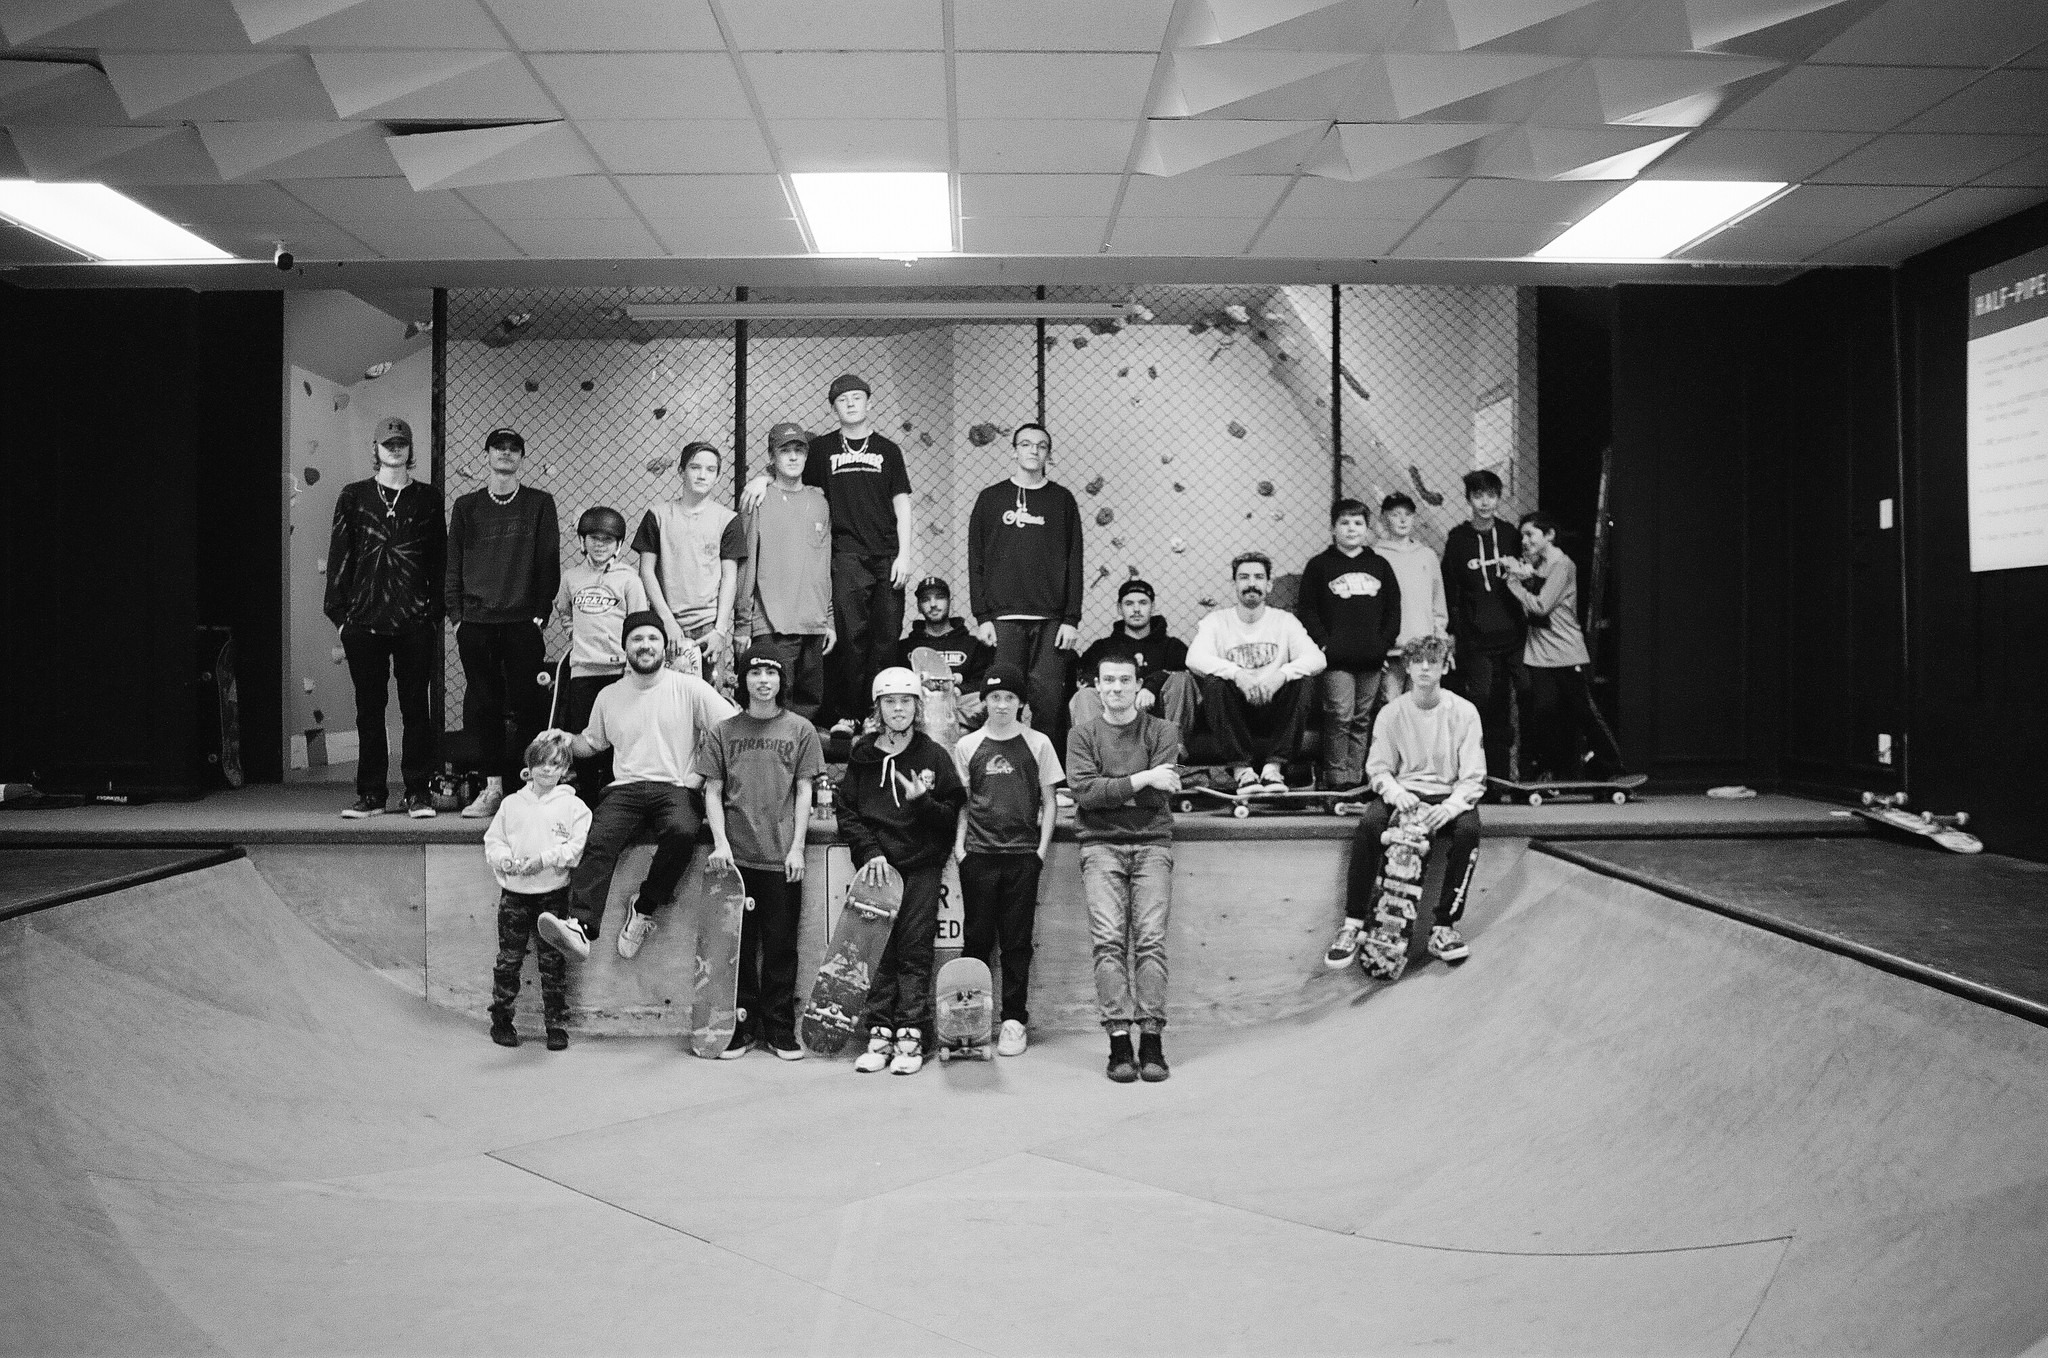 YOUTH ONE SKATEBOARD NIGHTS